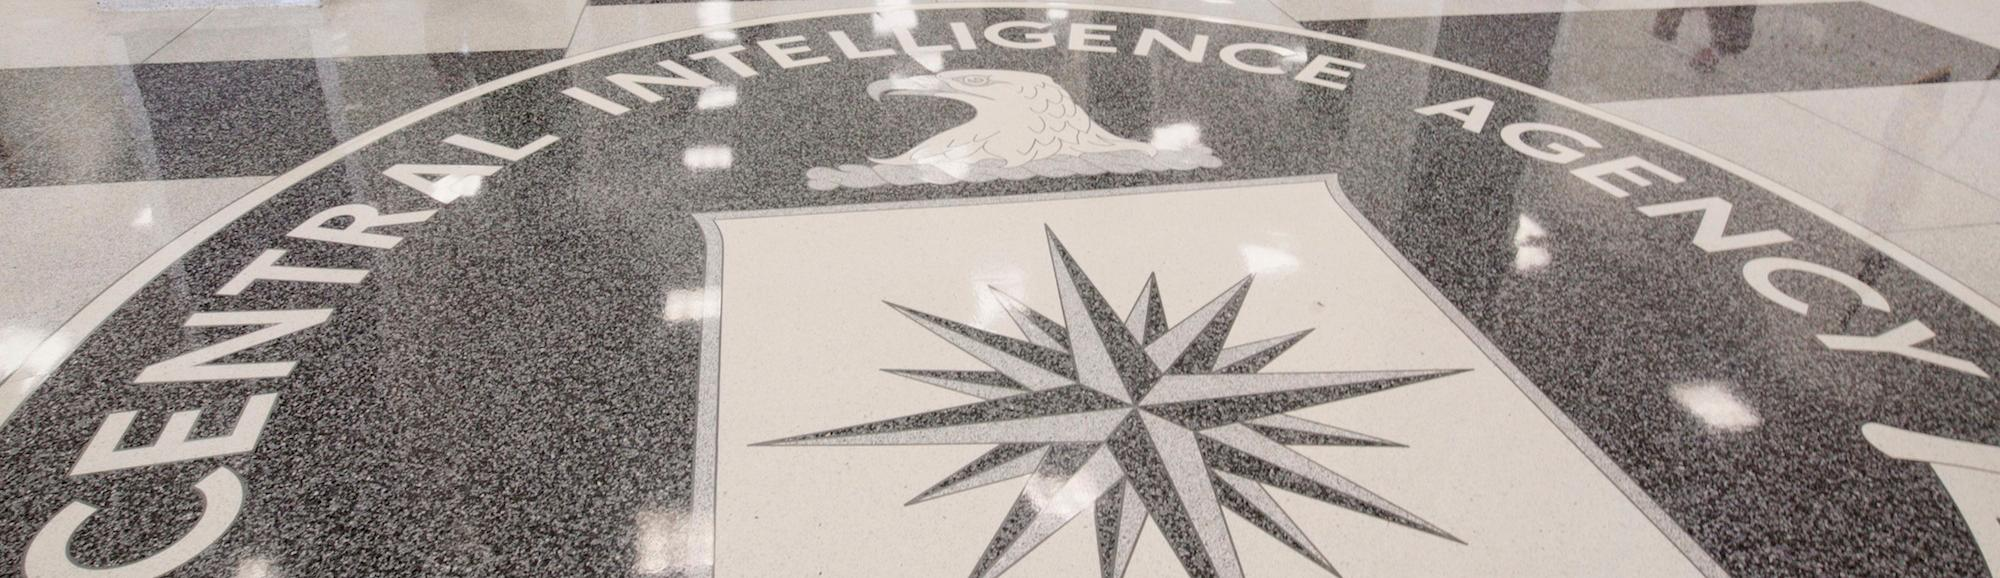 'Comprehensive' CIA Torture Report Won't Even Name Well-Known Architects of Torture Program